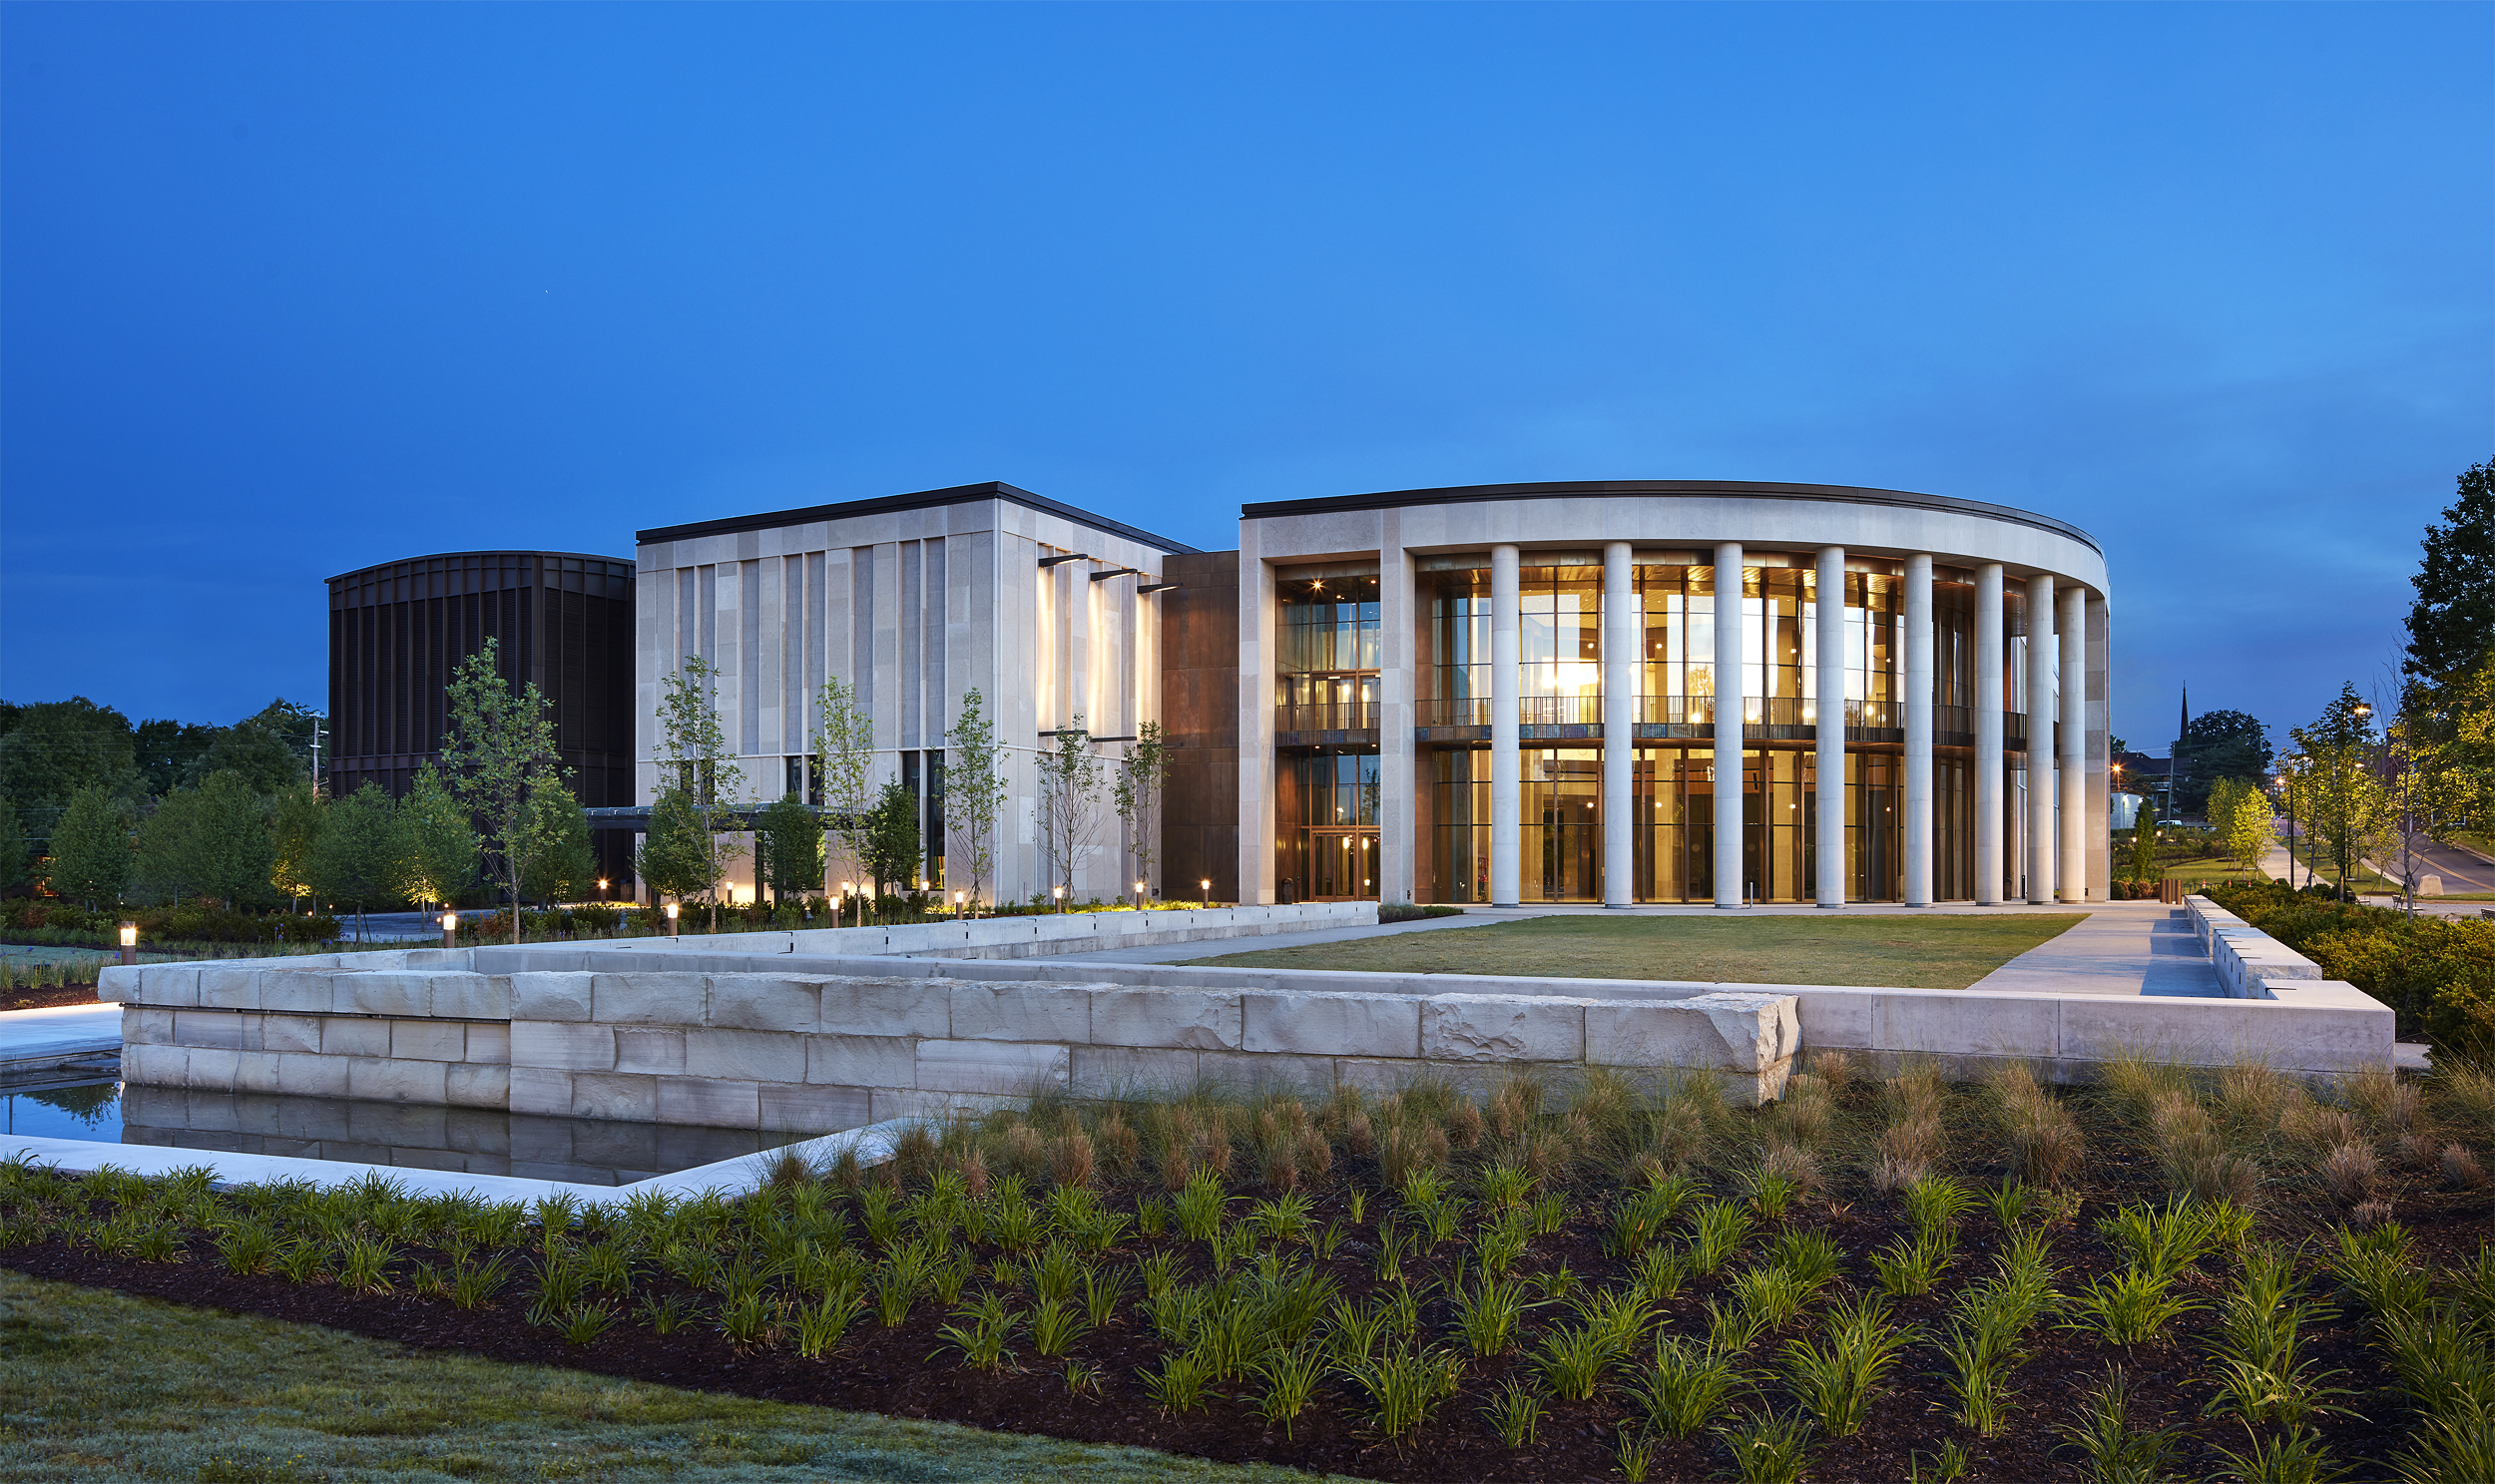 Tennessee State Museum at night